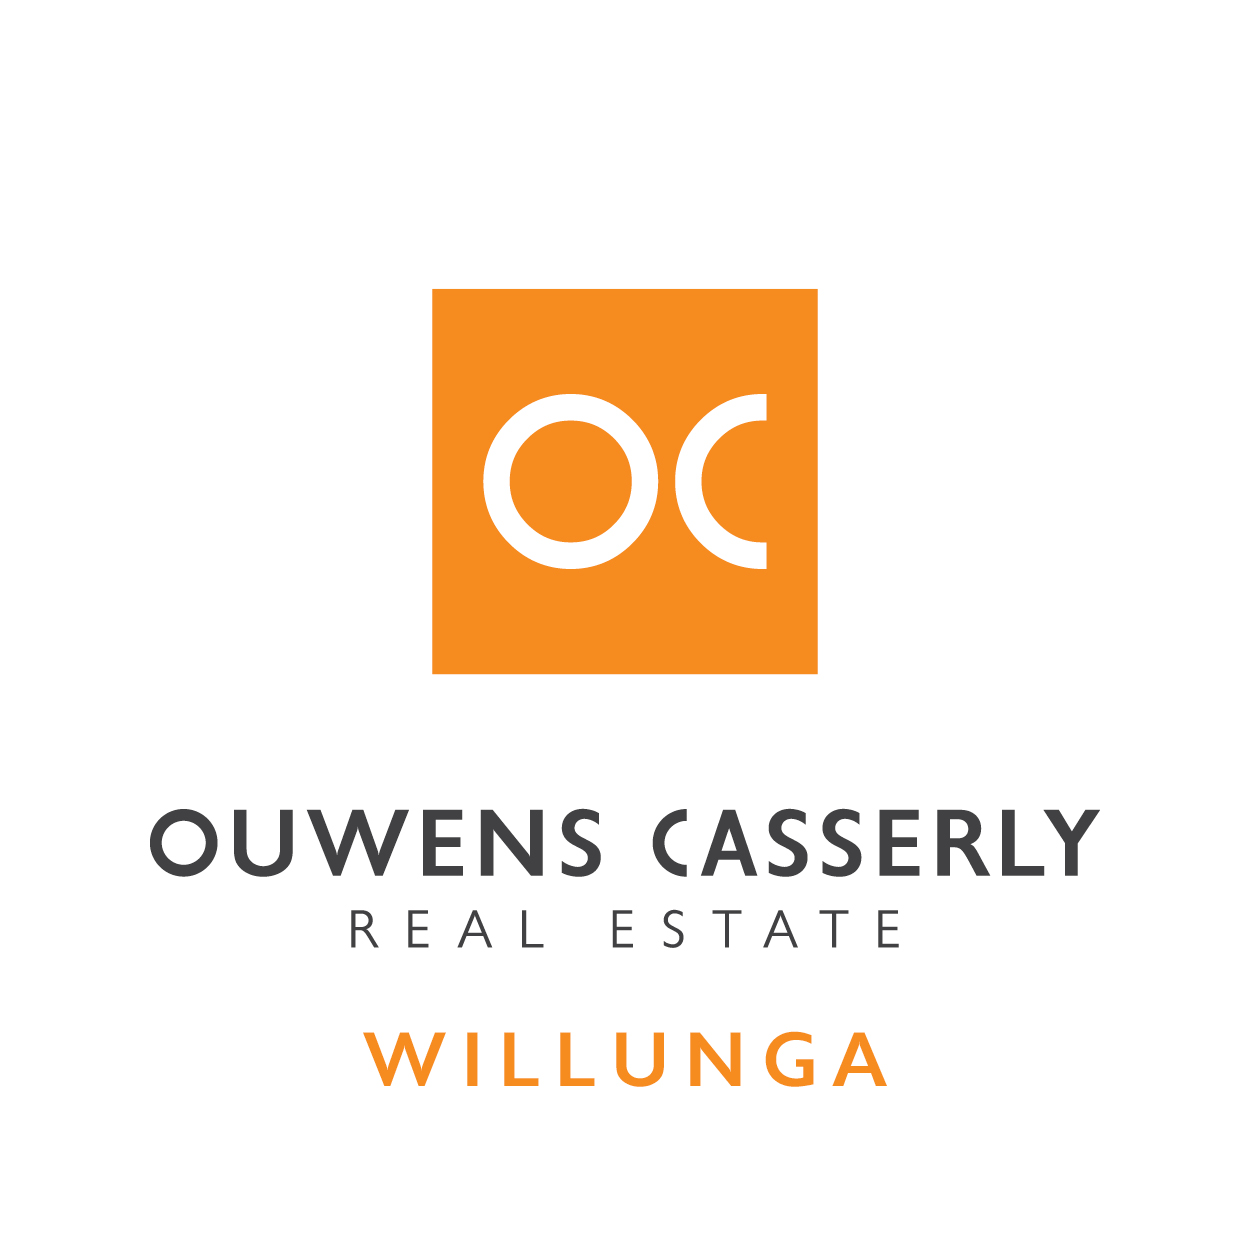 Ouwens Casserley Real Estate